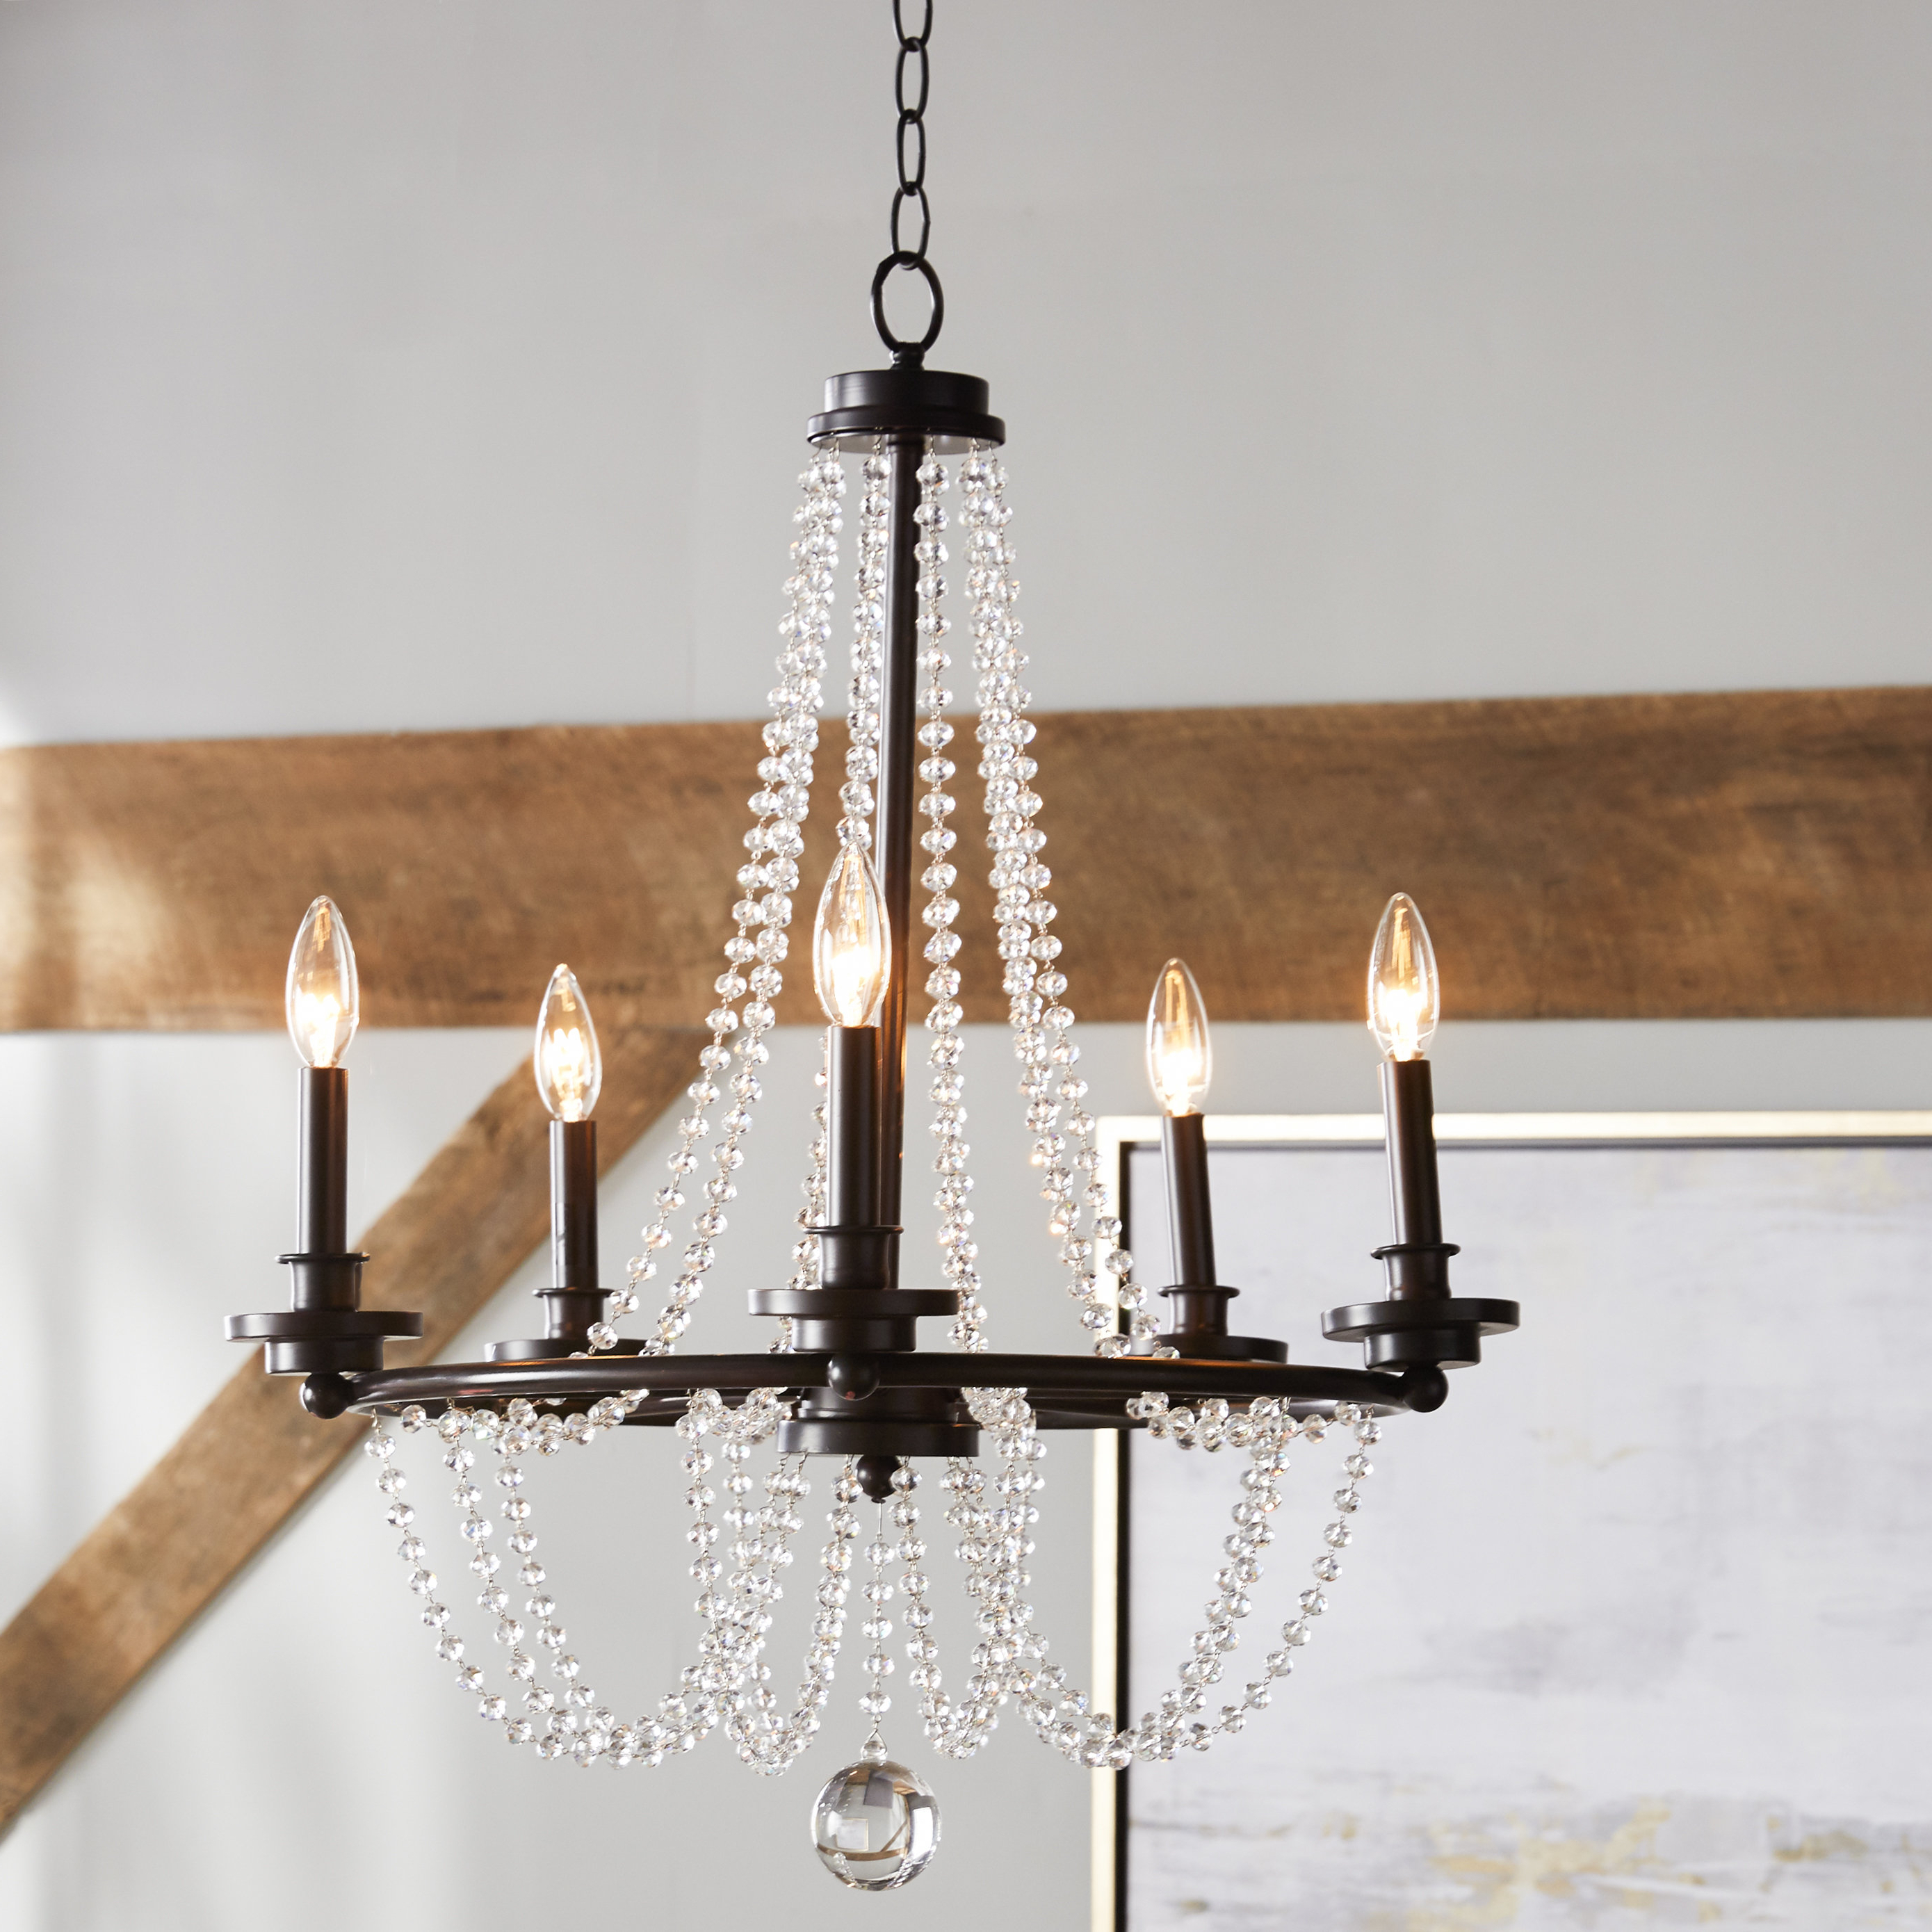 Widely Used Corneau 5 Light Chandeliers For One Allium Way Byromville 5 Light Chandelier (View 6 of 20)